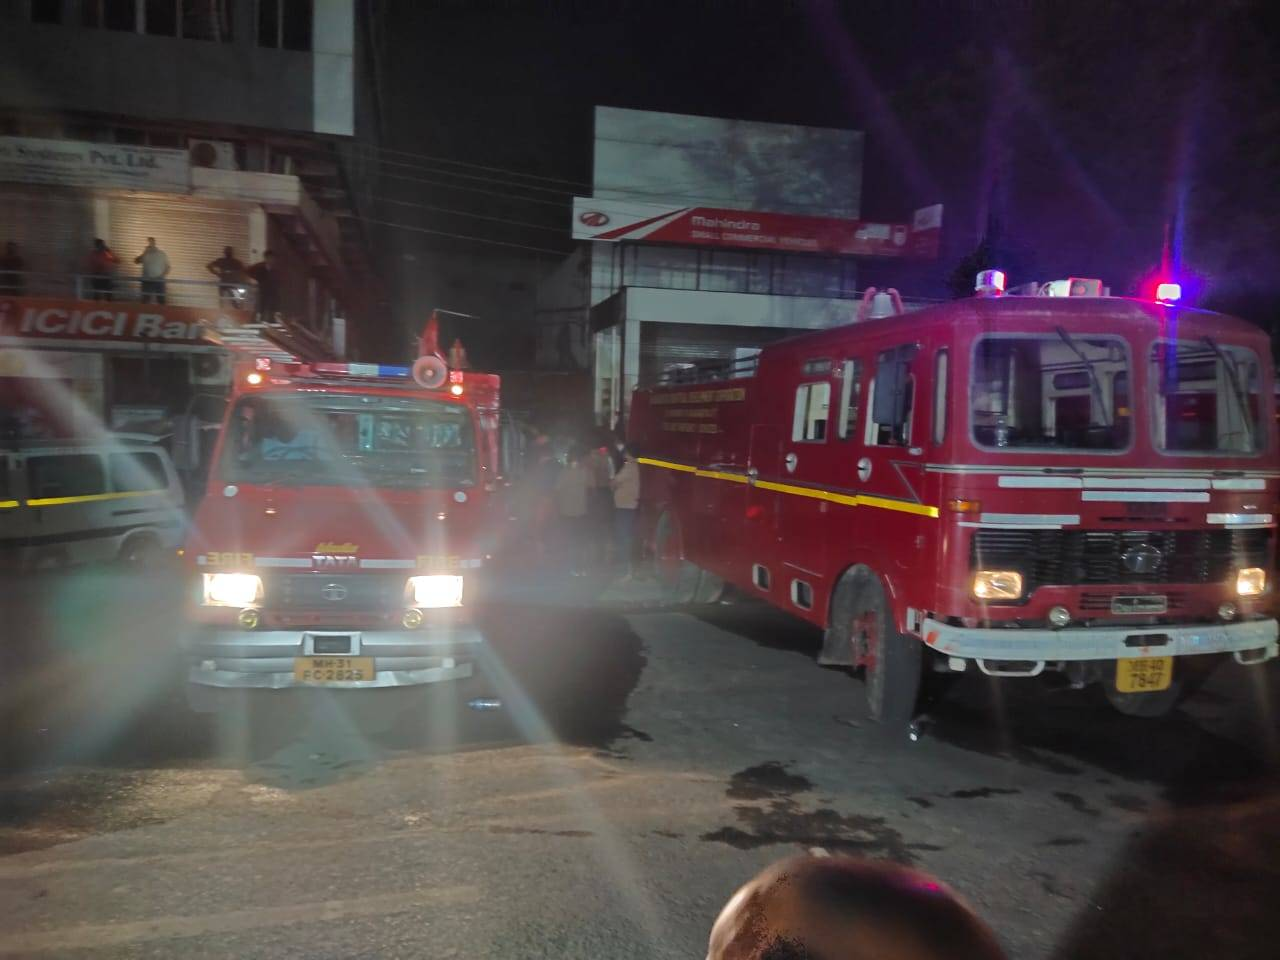 Maharashtra: 4 dead and some injured in a fire at a private hospital in Nagpur | India News